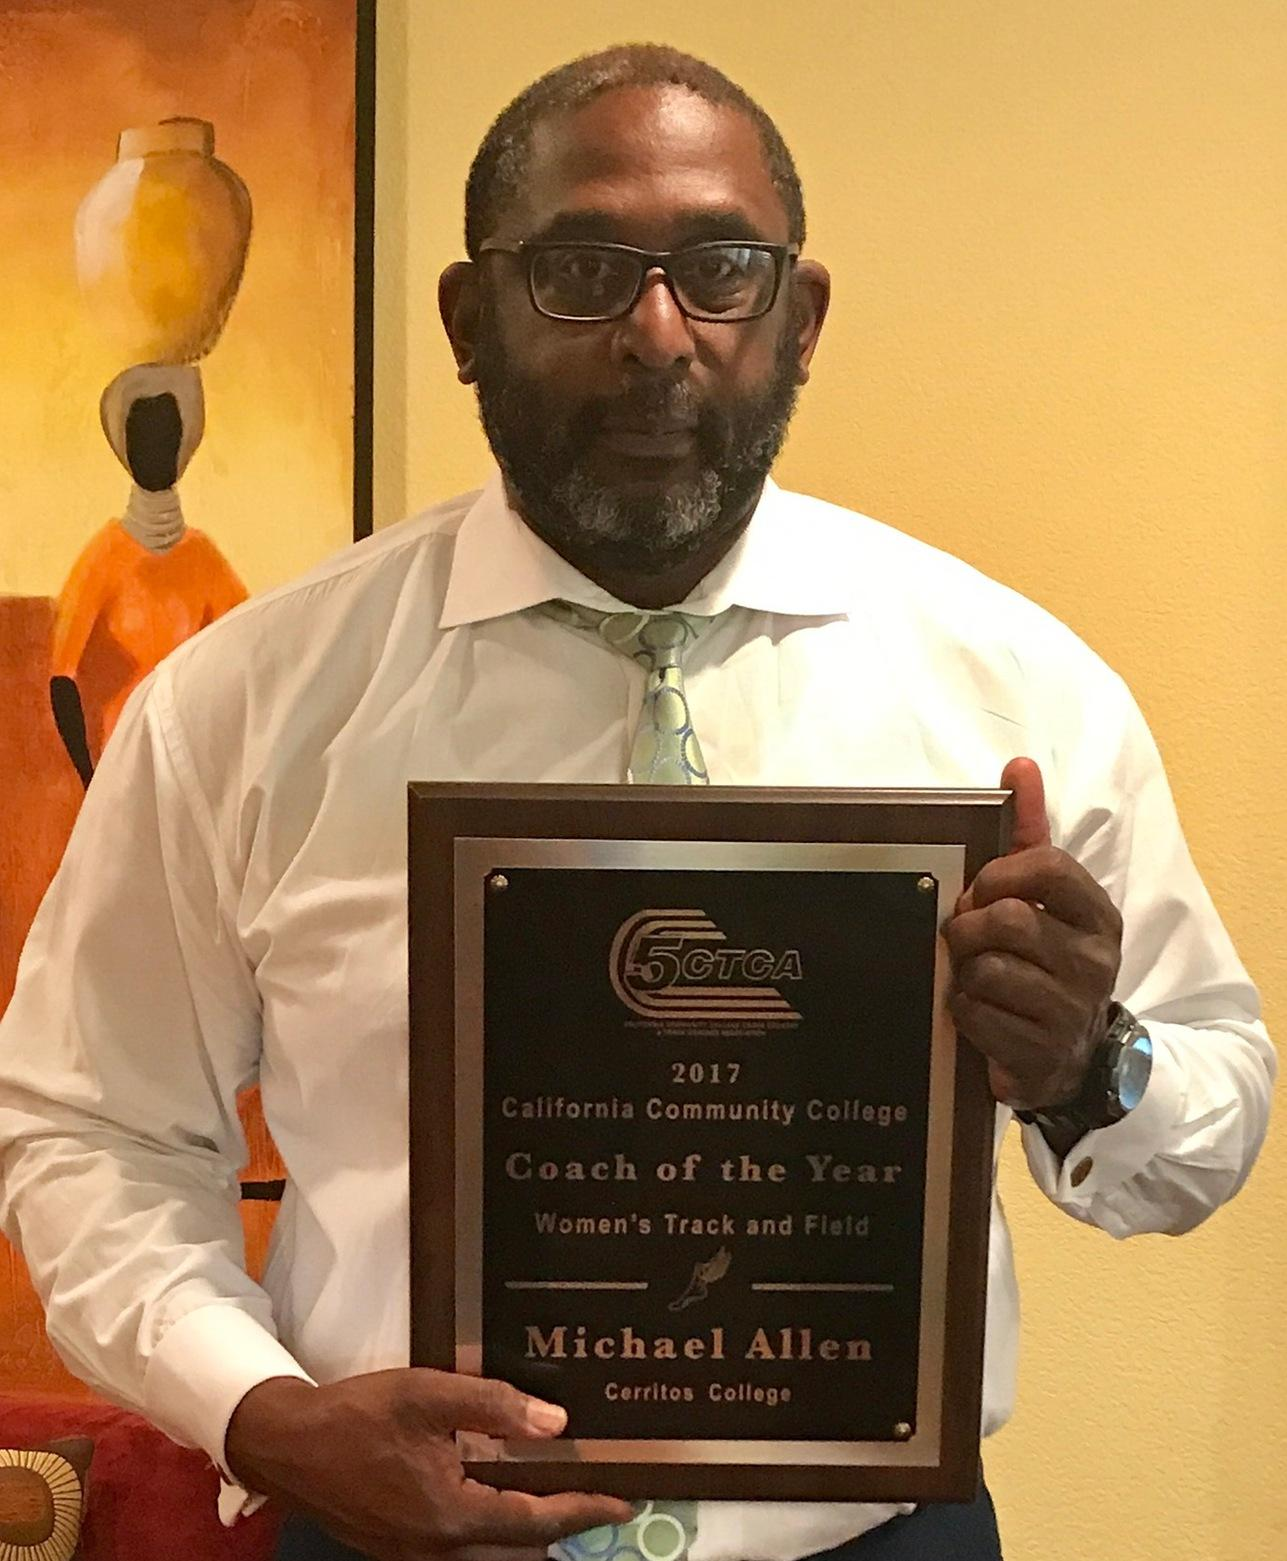 Women's Track & Field Coach Michael Allen named Coach of the Year